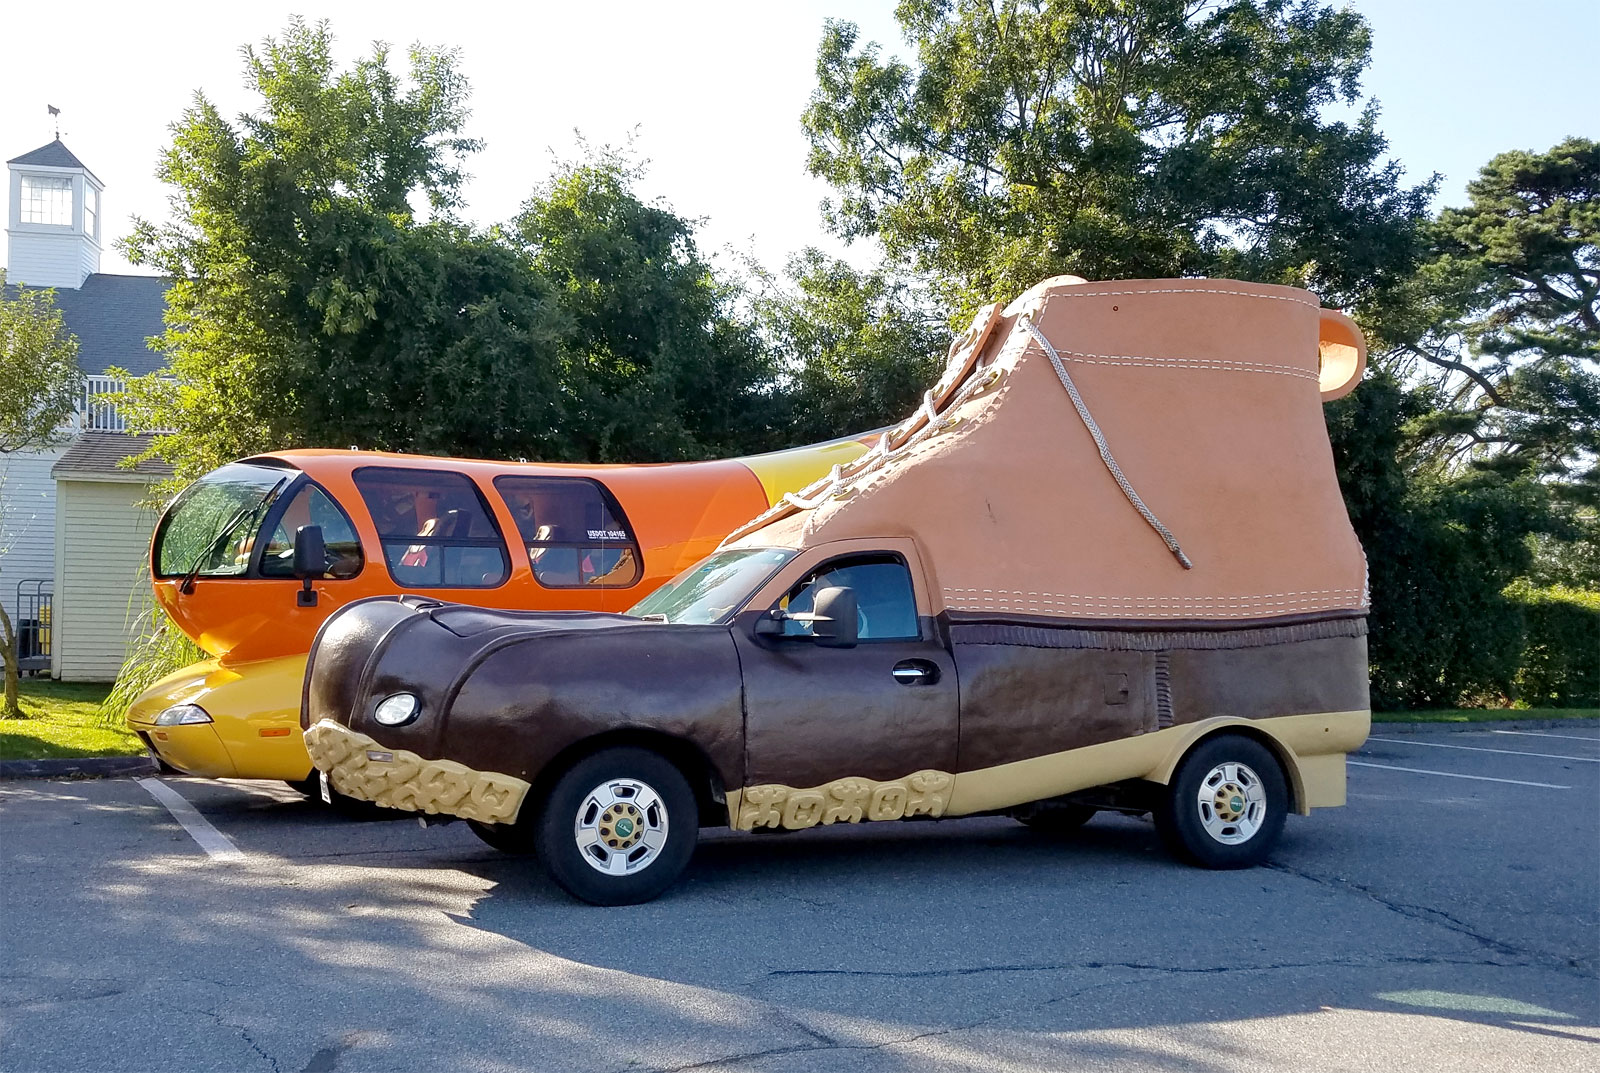 10 Flavorful Facts About Wienermobile together with Oscar Mayer Vehicle in addition 646863 further  on oscar meyer weiner mobile schedule 2017